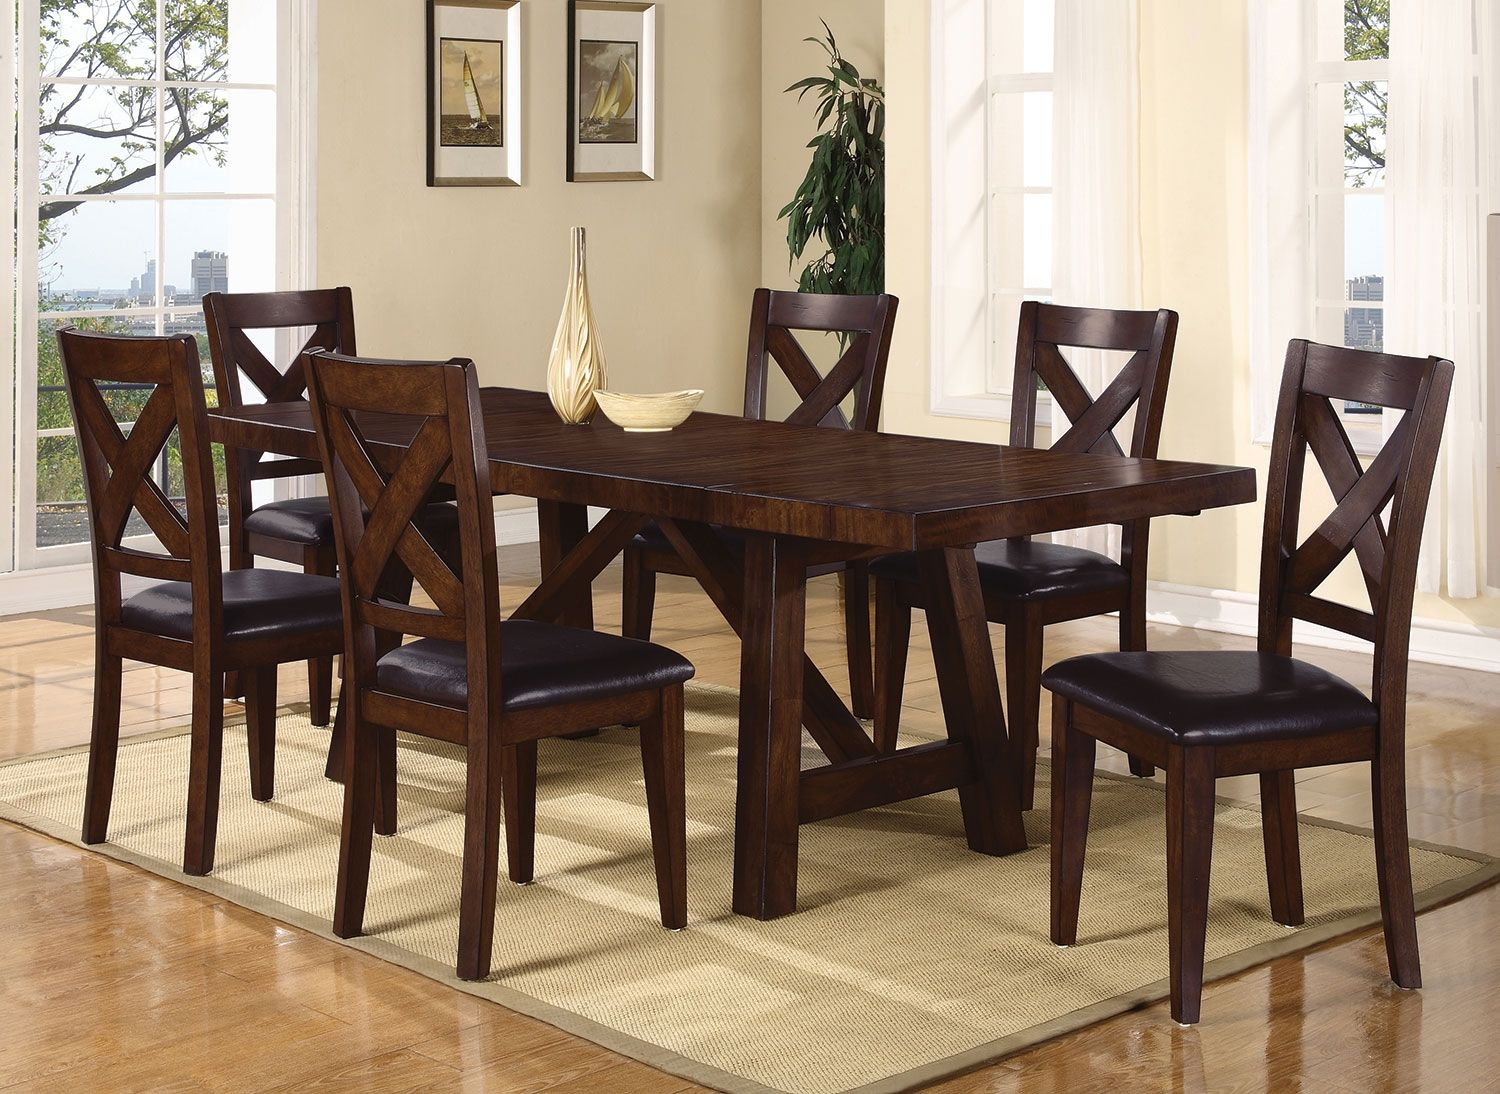 the brick dining room sets. Adara 7 Piece Dining Package With Cross-Back Chairs | The Brick · Room SetsKitchen Sets